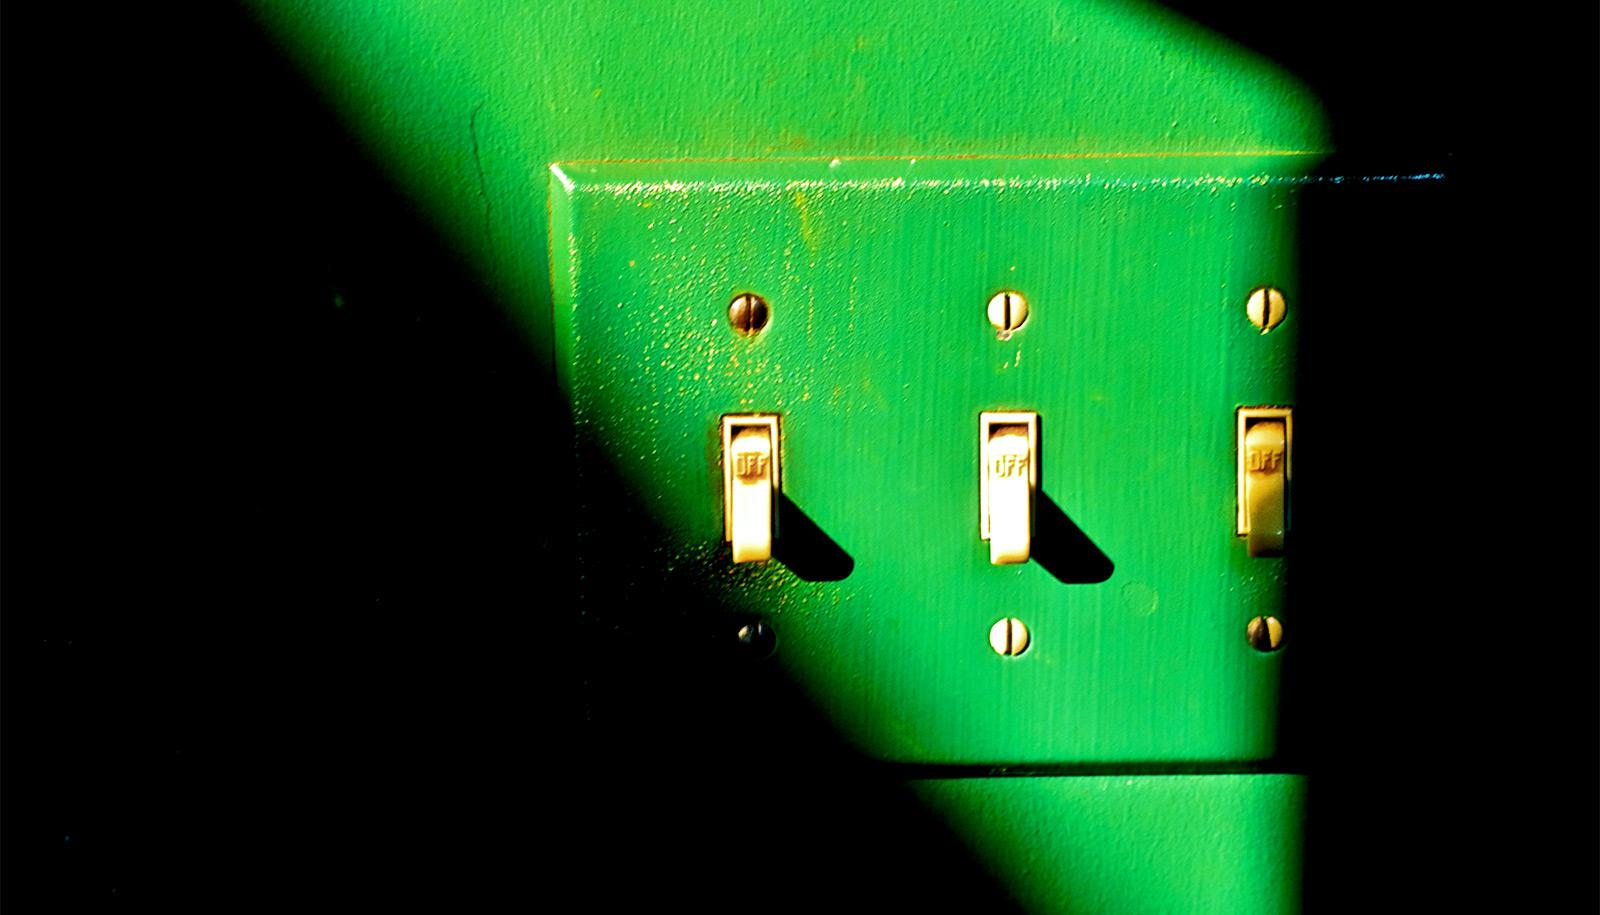 A green wall and light switch in a sliver of light in a dark room